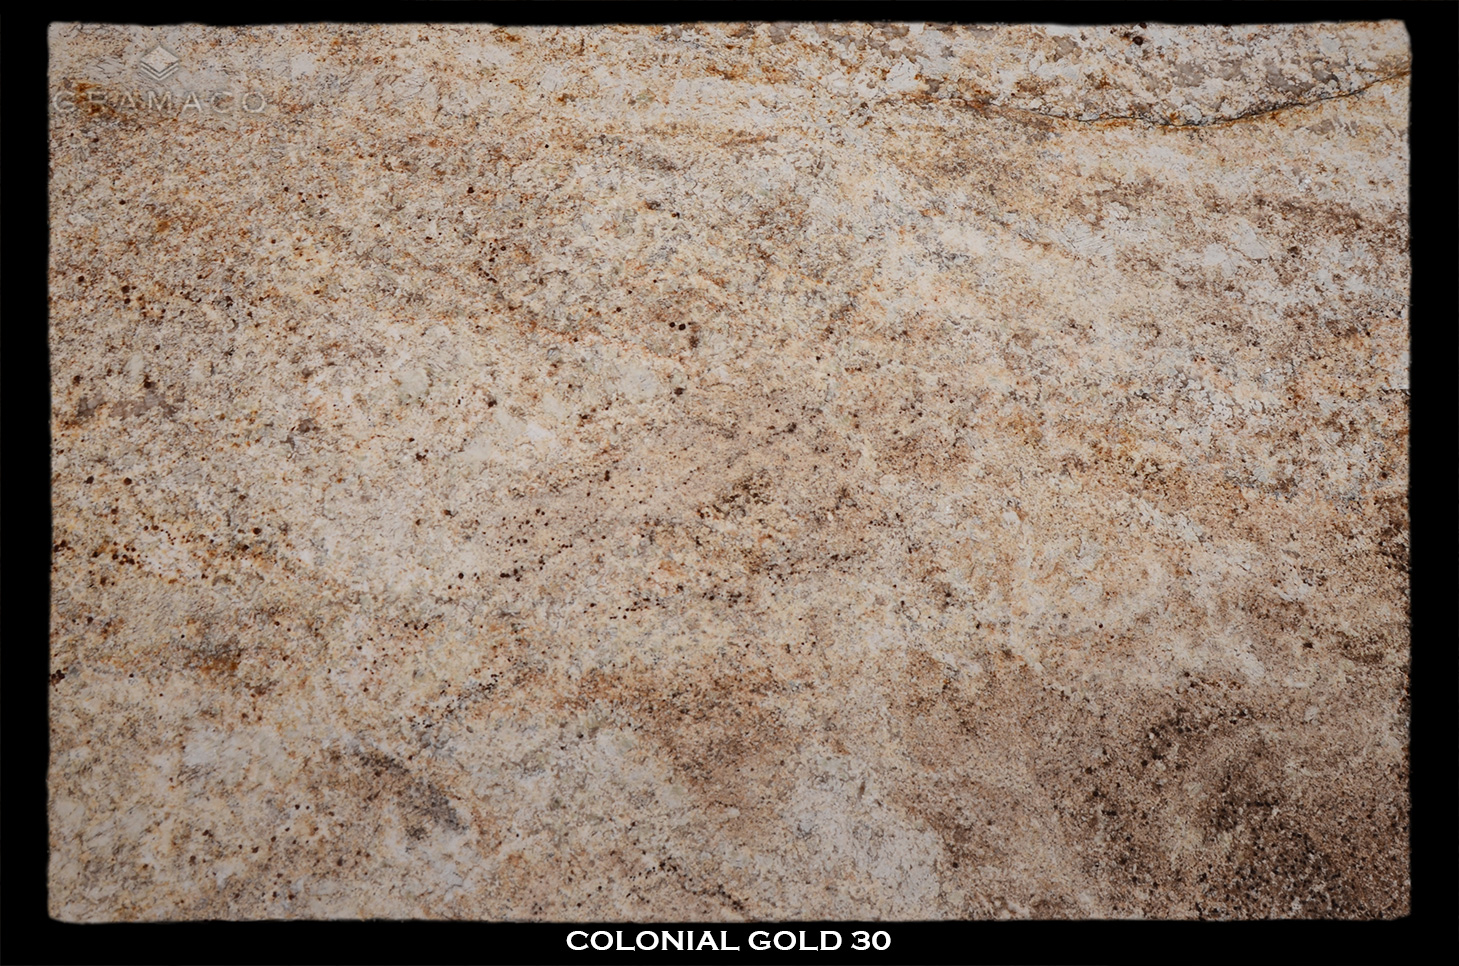 COLONIAL-GOLD-30-Slab